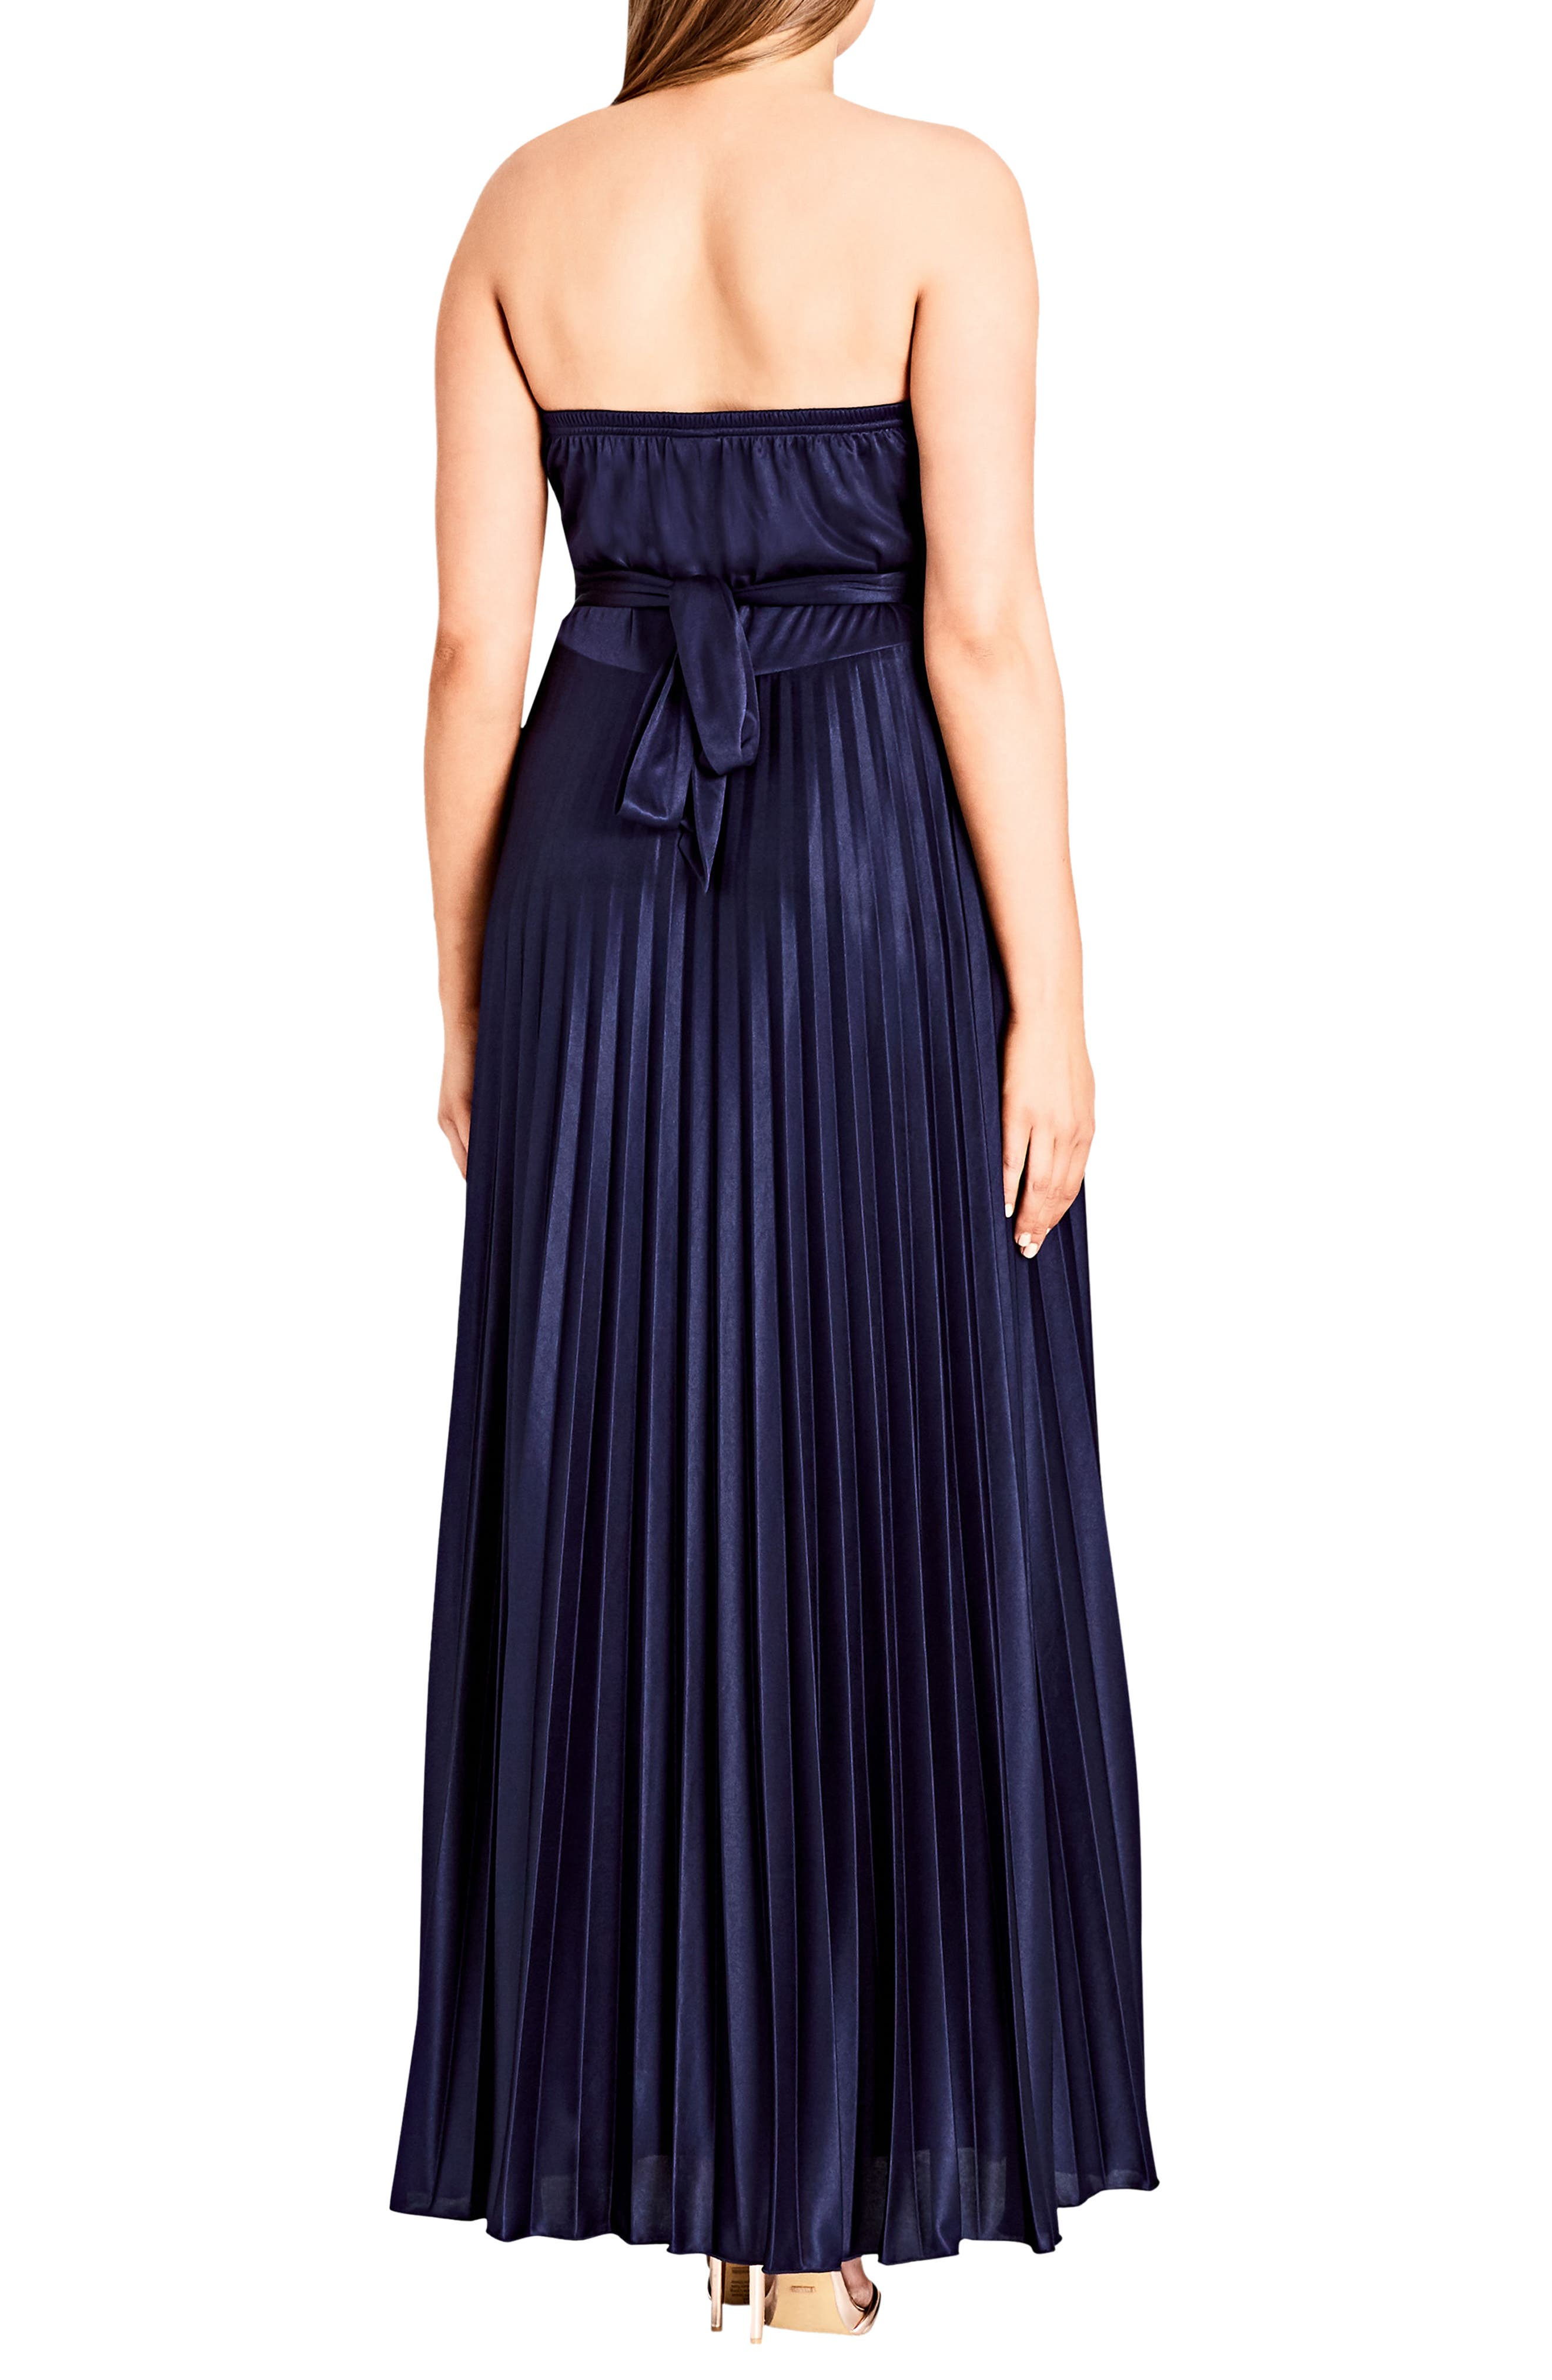 Helena Embellished Strapless Maxi Dress,                             Alternate thumbnail 2, color,                             Navy